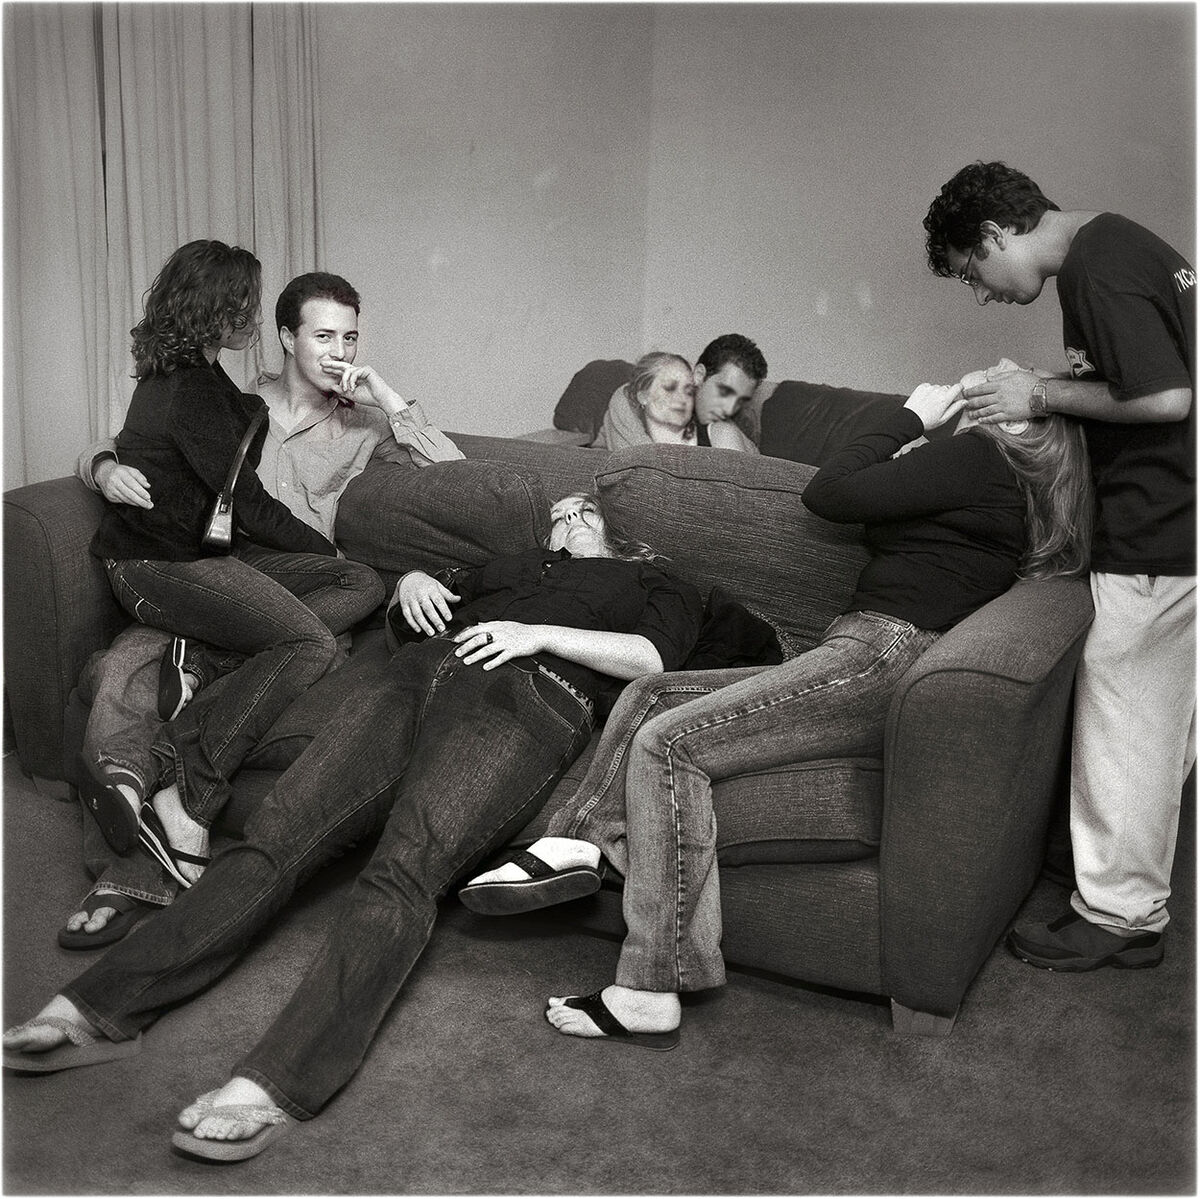 Andrew Moisey, image from  The American Fraternity , 2000–2008. Courtesy of the artist.